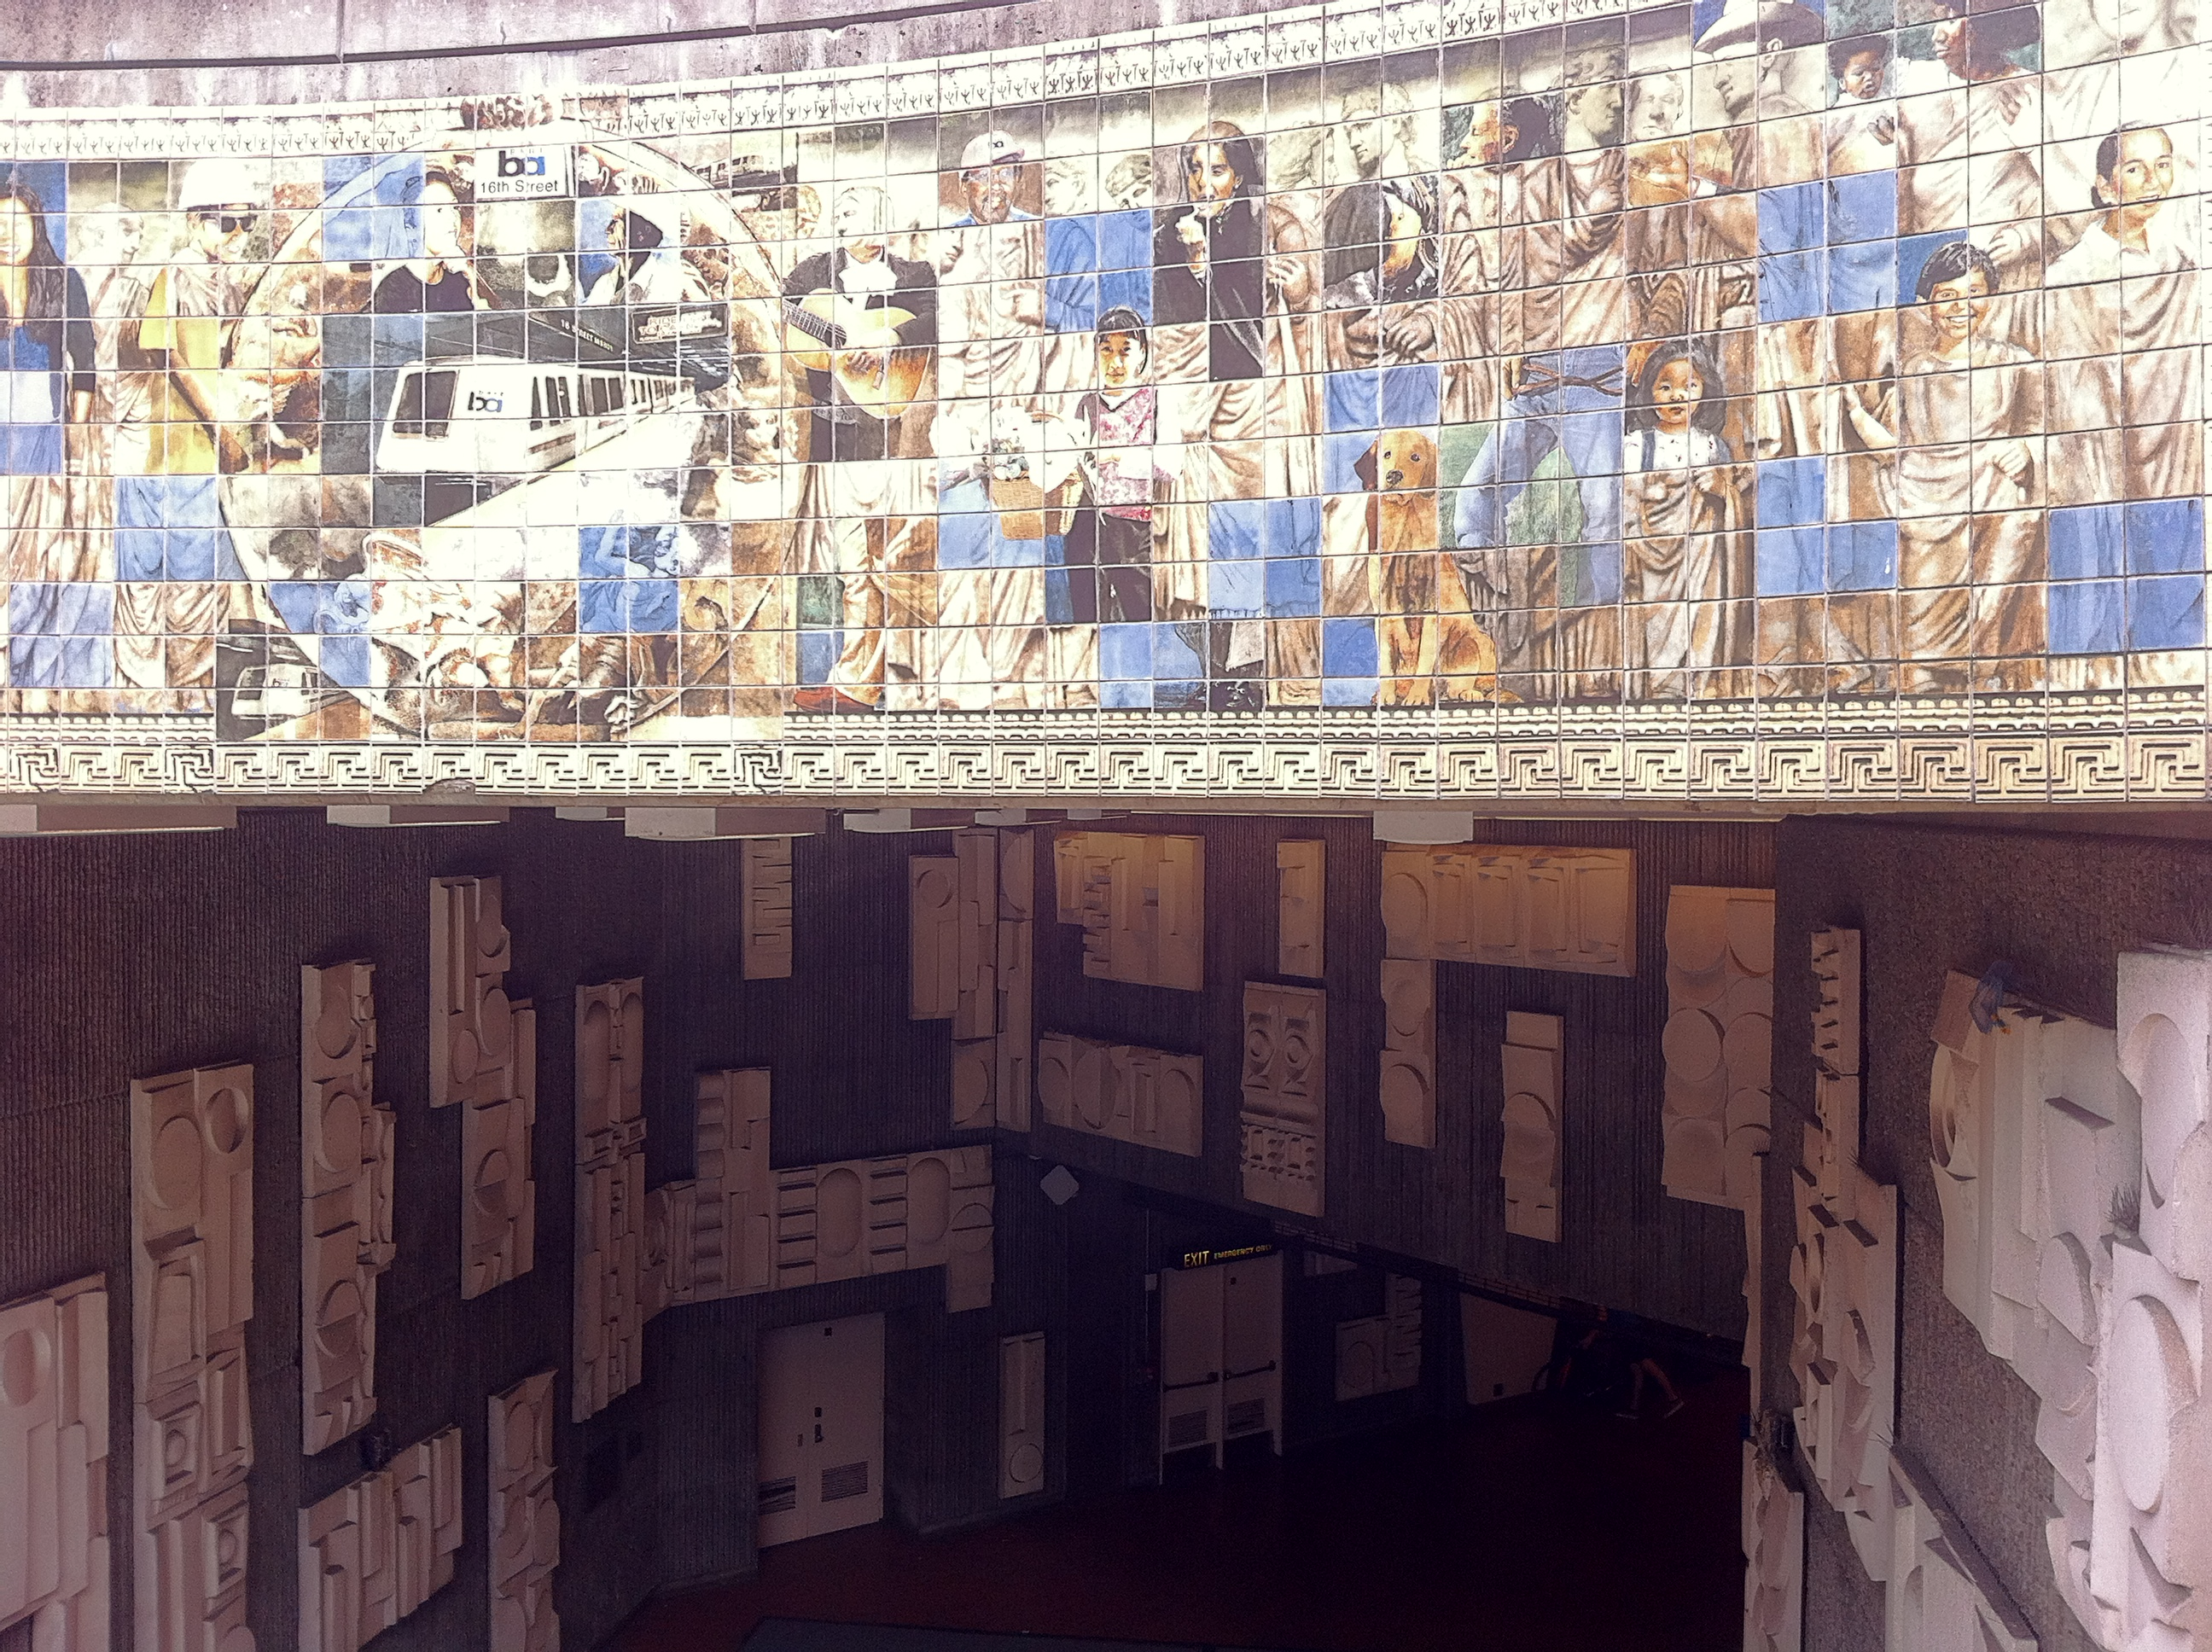 Image showing tile mural art, and concrete relief art at 16th St Mission BART station. Tile mural is titled Future Roads by Daniel Galvez and Jos Sances. The concrete low relief artwork is by William Mitchell